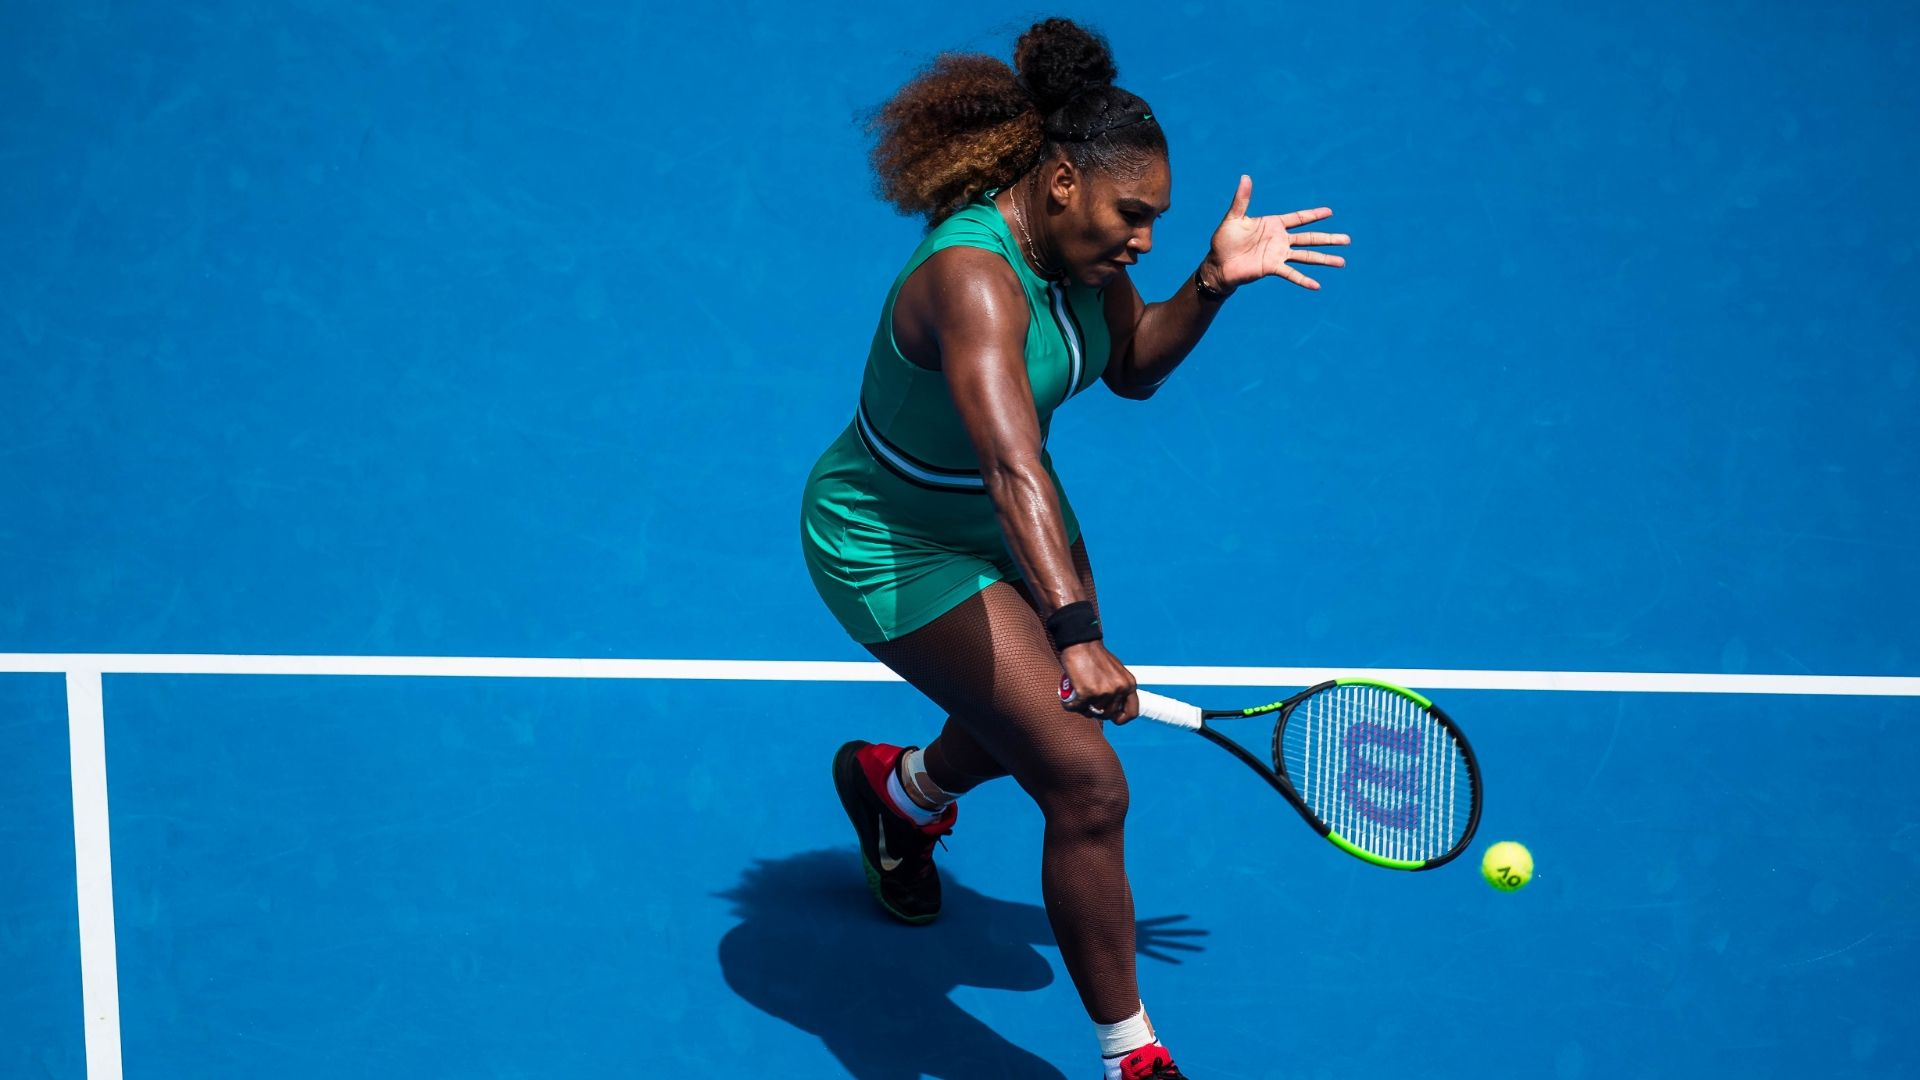 Serena wins 1st round match in straight sets